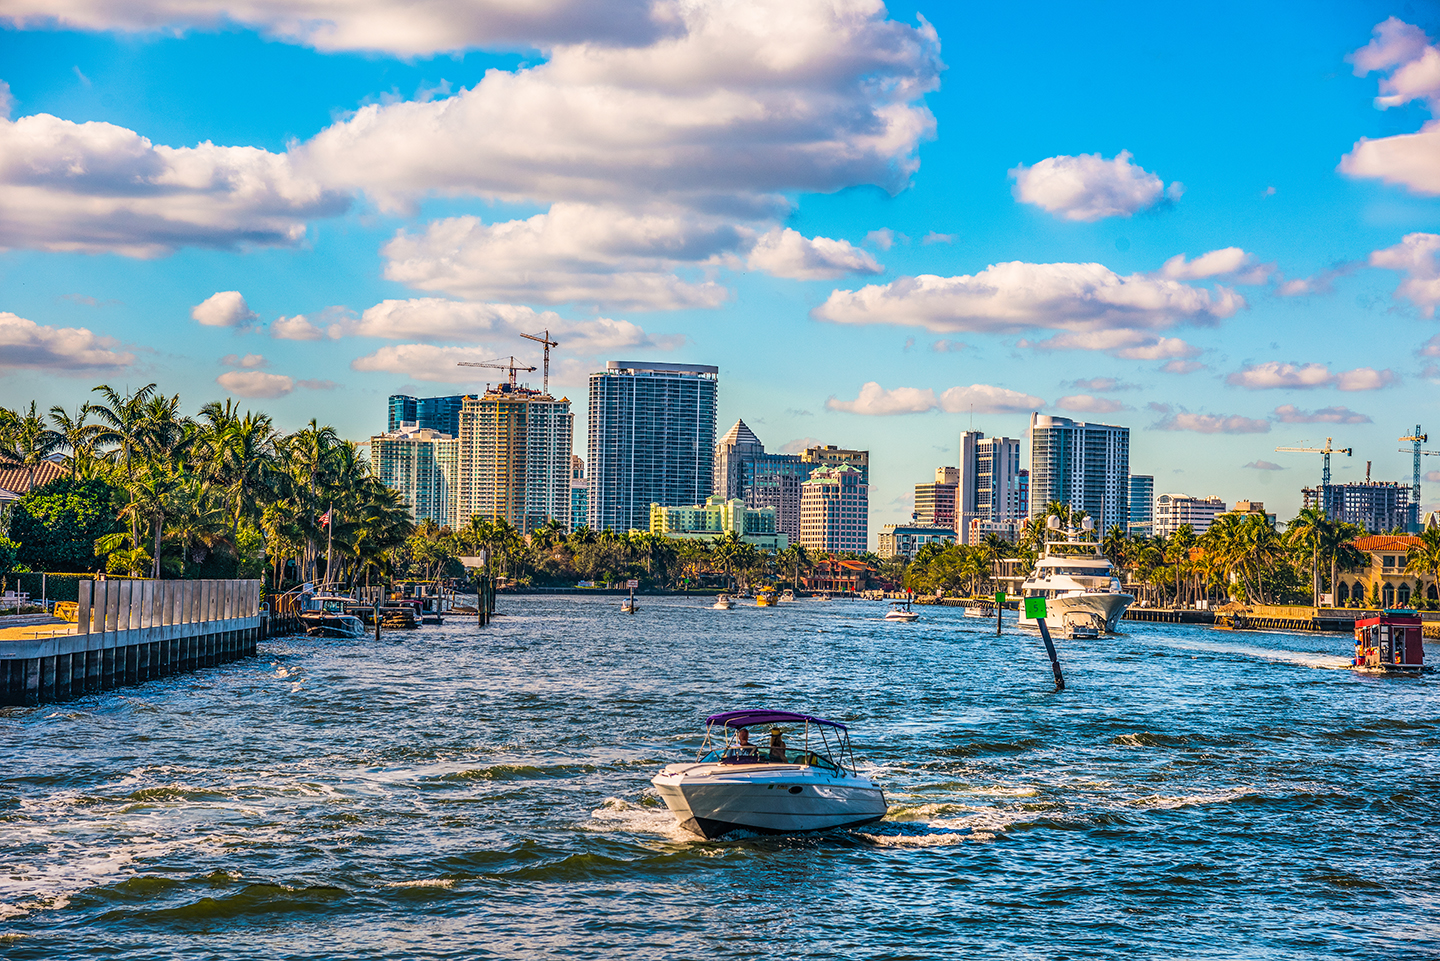 A boat coming towards you on the water with Fort Lauderdale downtown in the background.